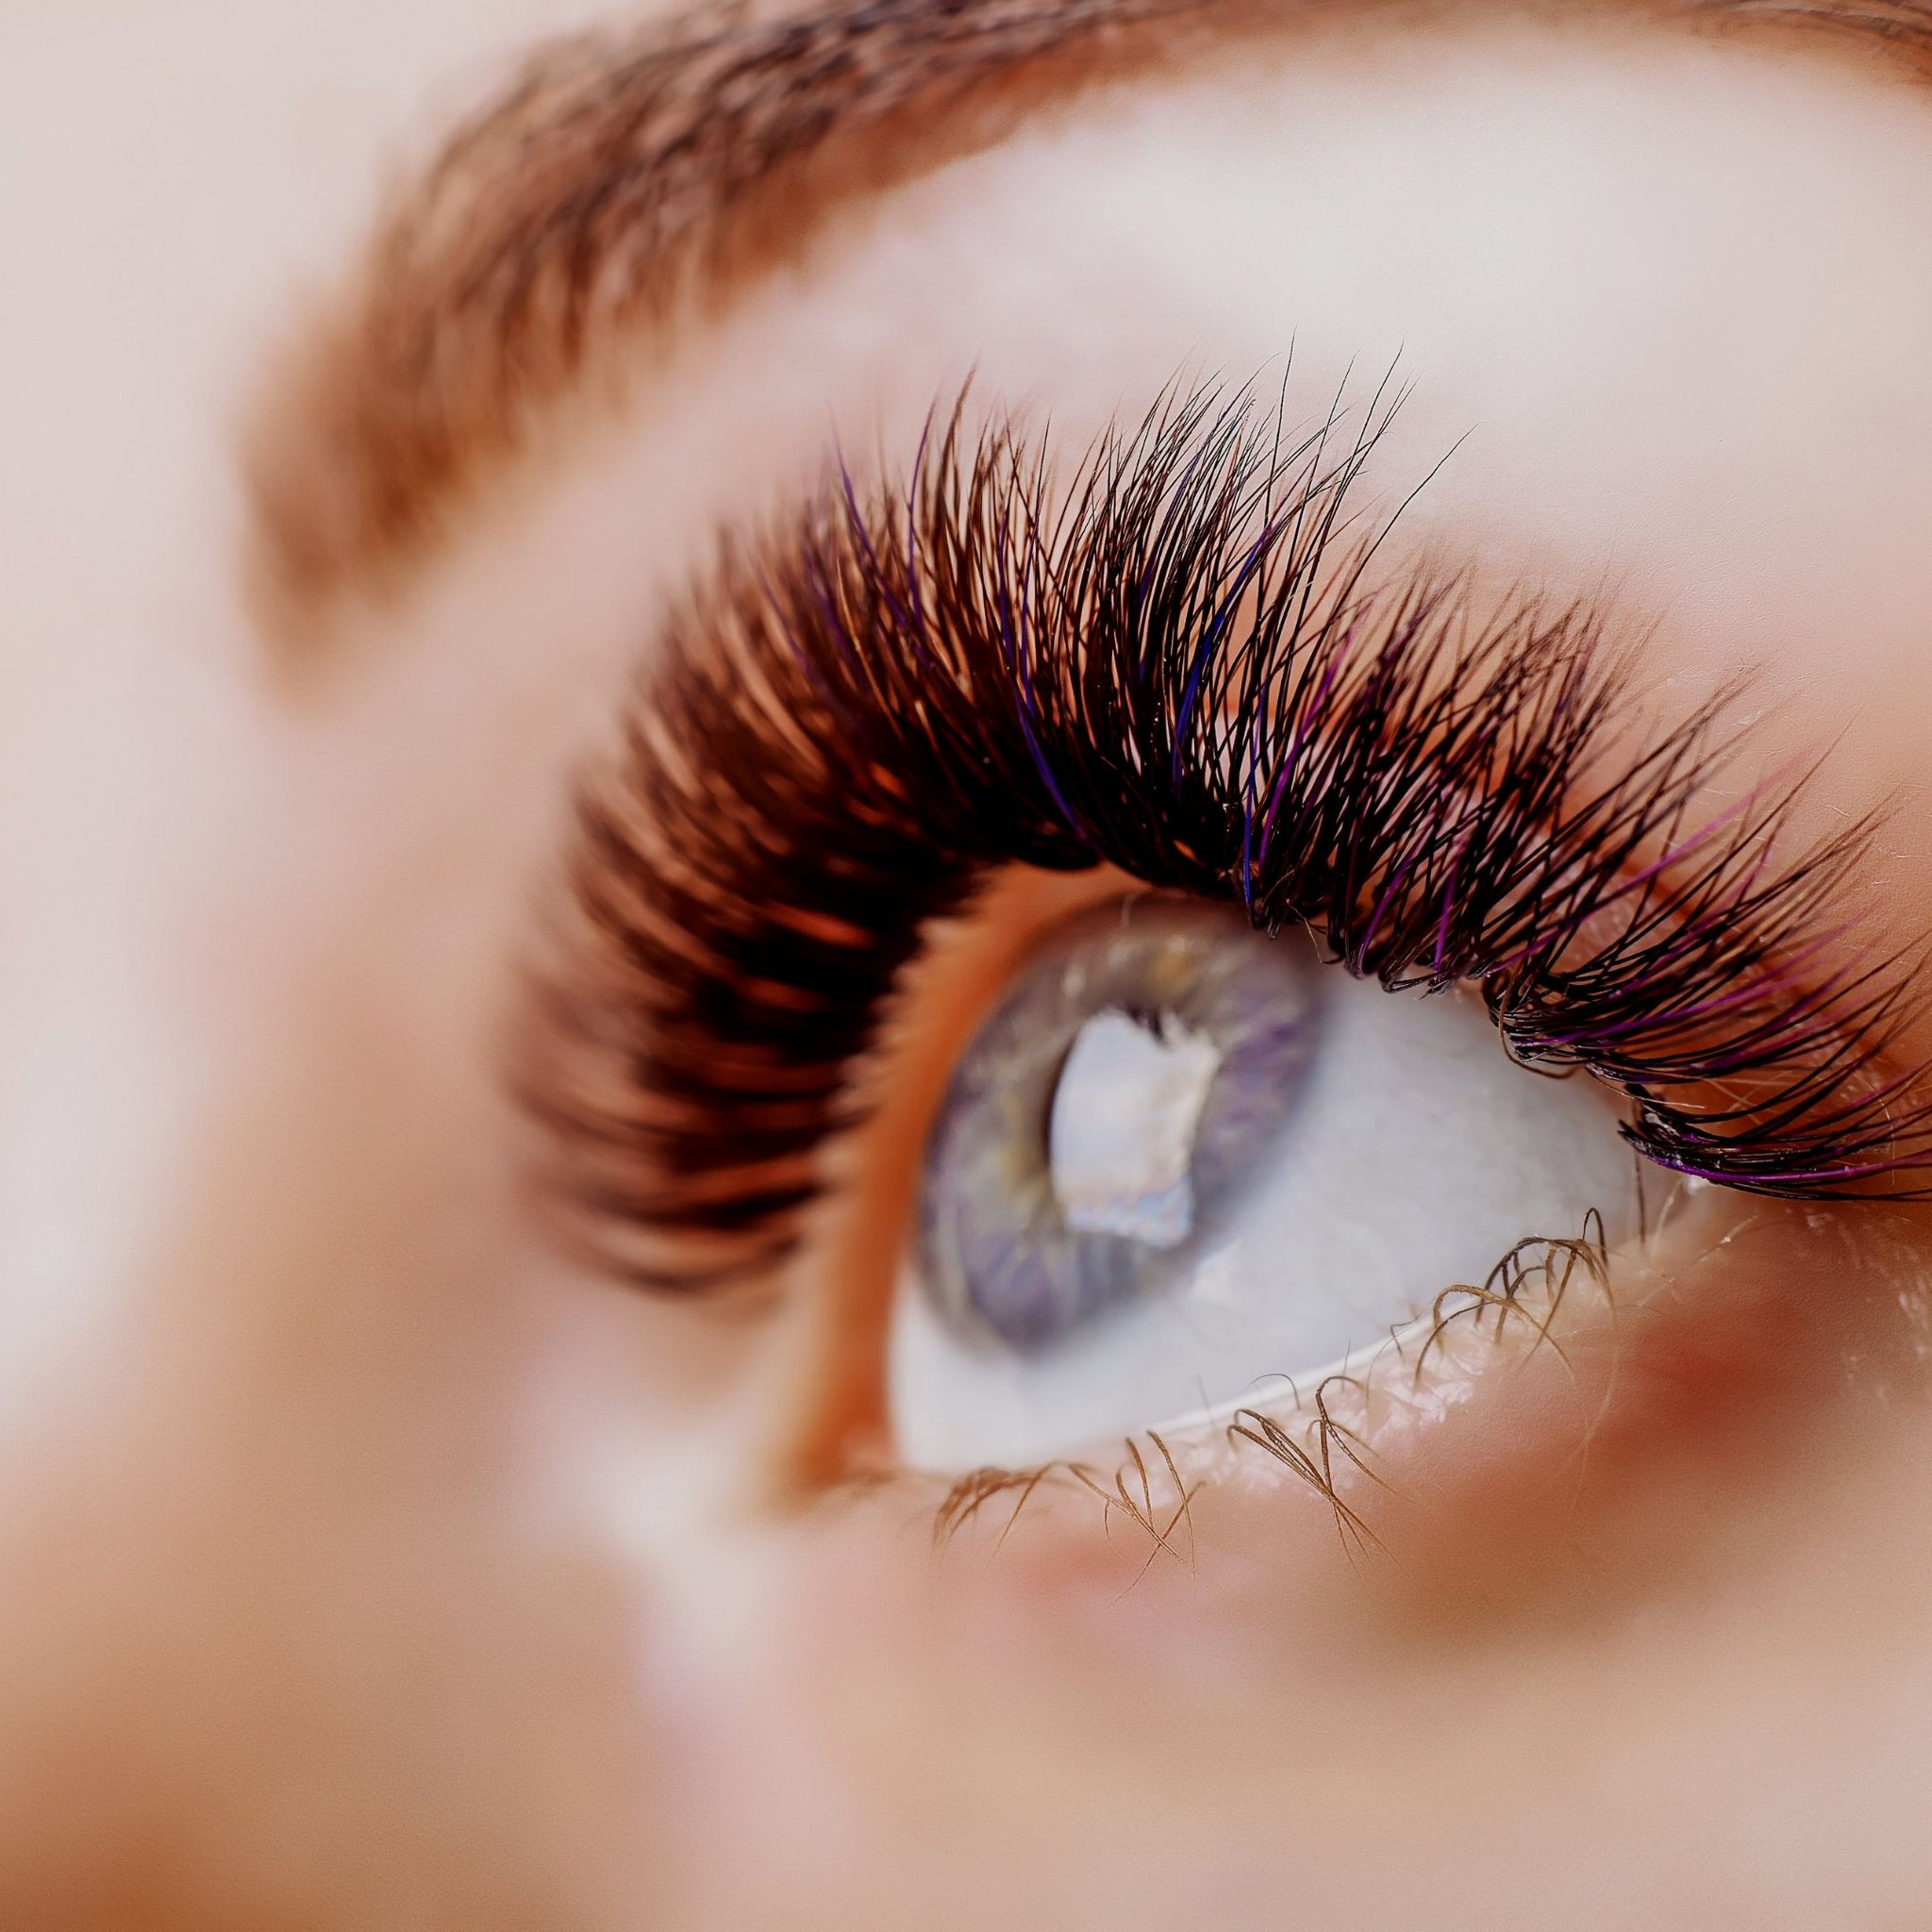 Everything You Need To Know About Your Eyelashes